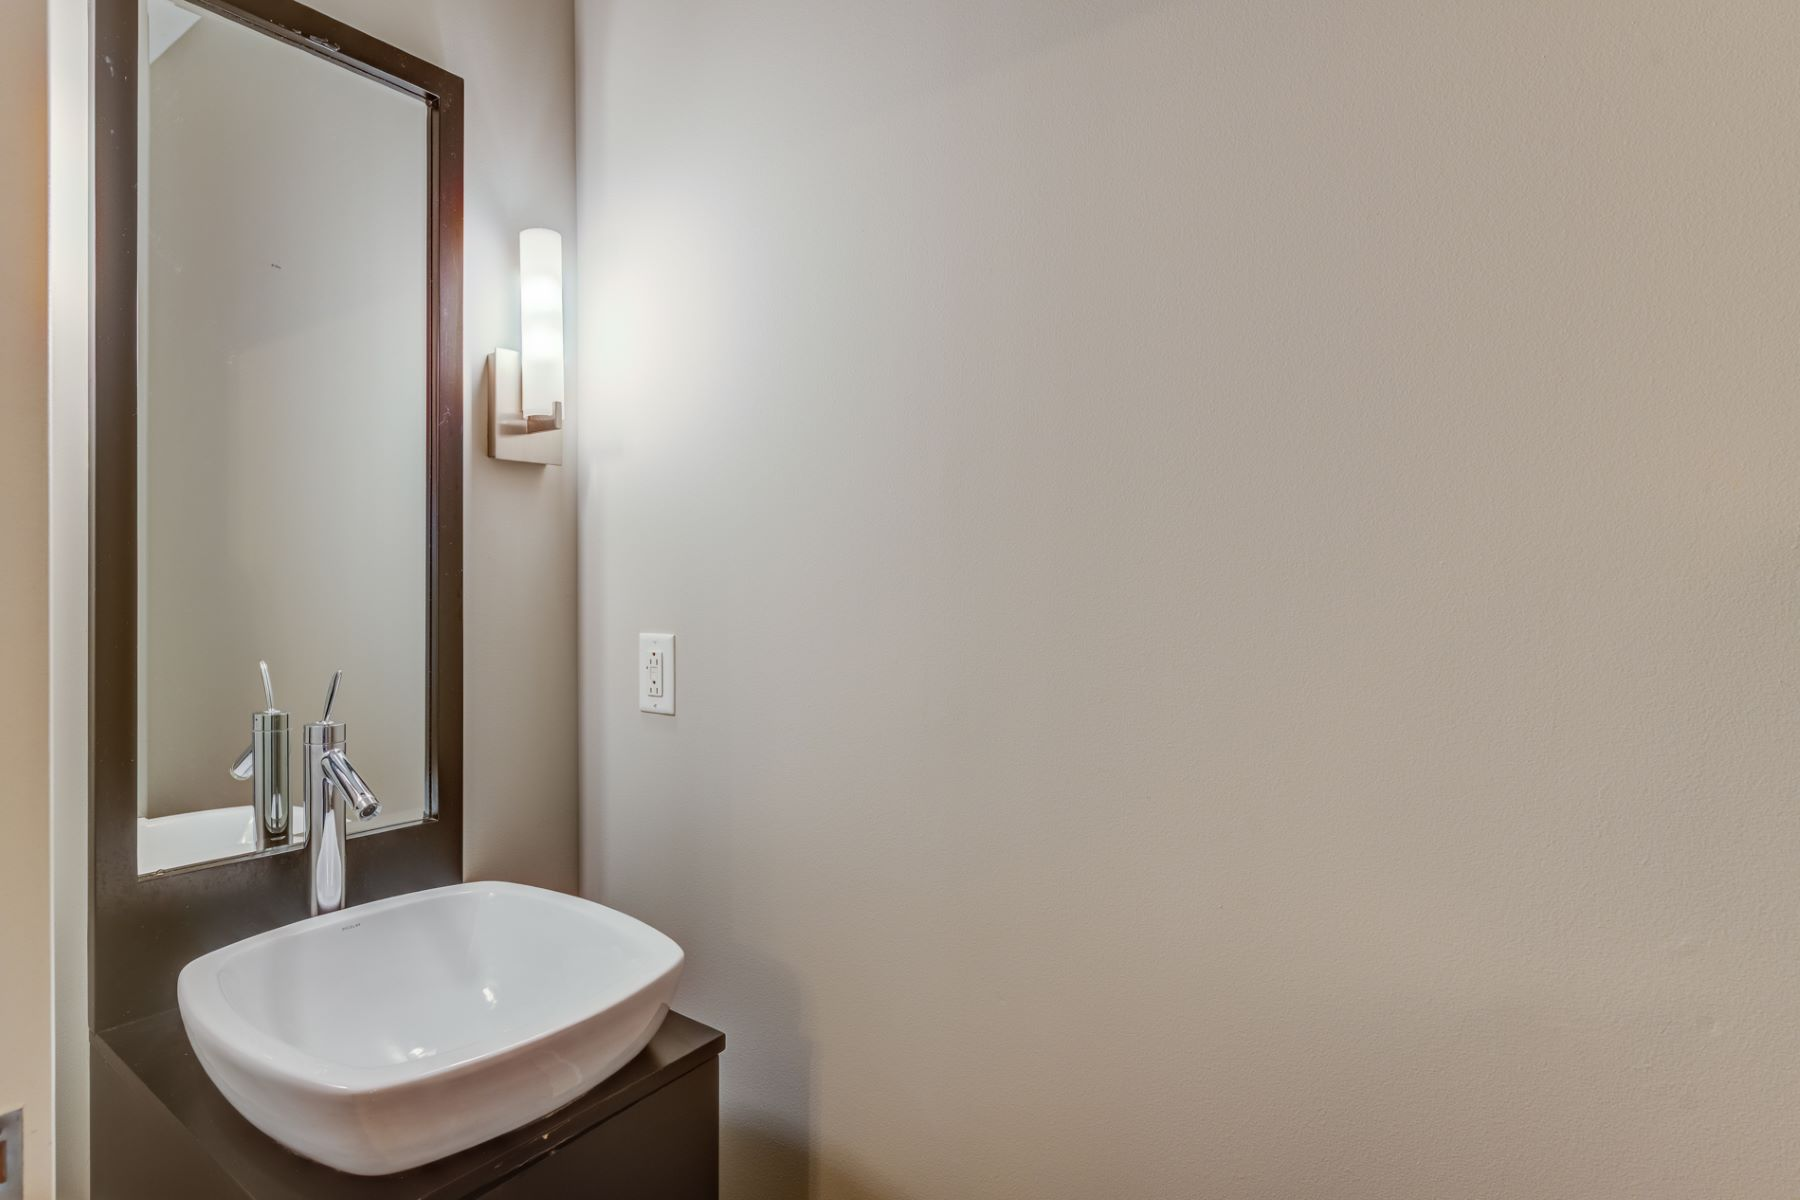 Additional photo for property listing at 4100 Forest Park Ave # 122 St. Louis, Missouri 63108 United States